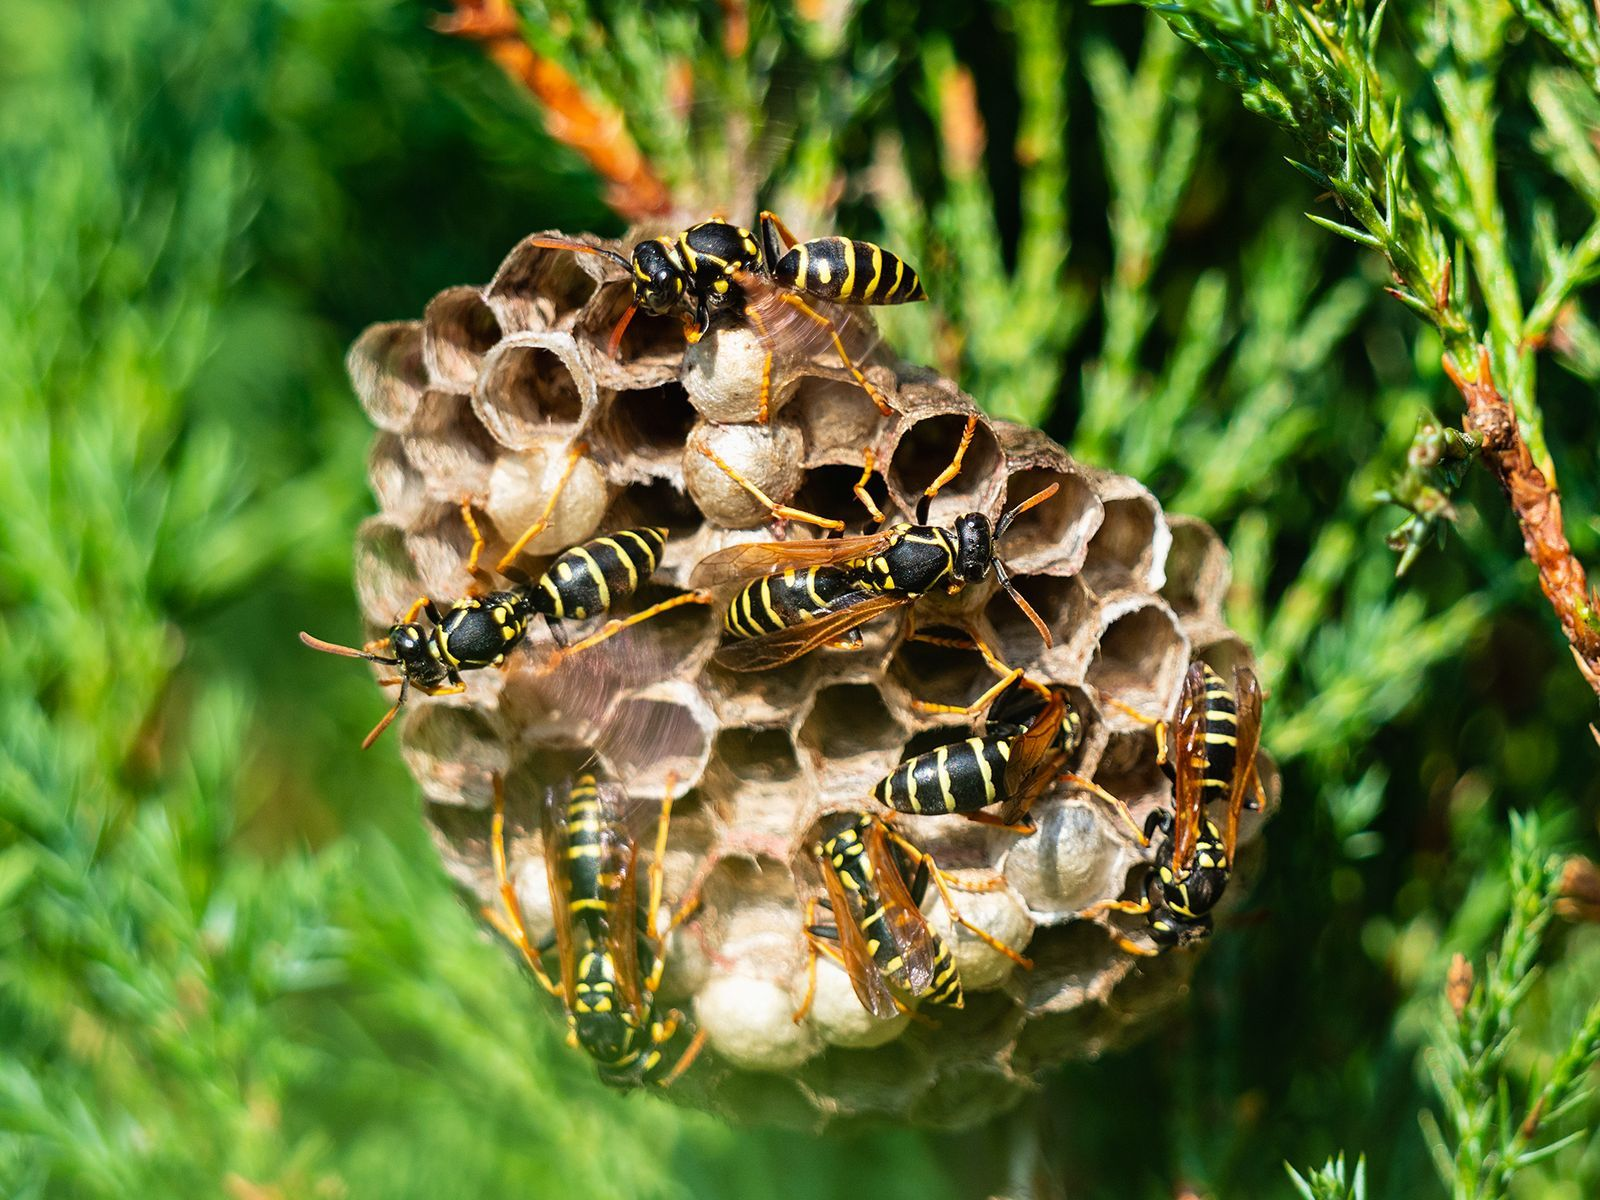 How To Get Rid Of Wasps And Yellow Jackets In 2020 Get Rid Of Wasps Plants To Attract Bees Getting Rid Of Bees